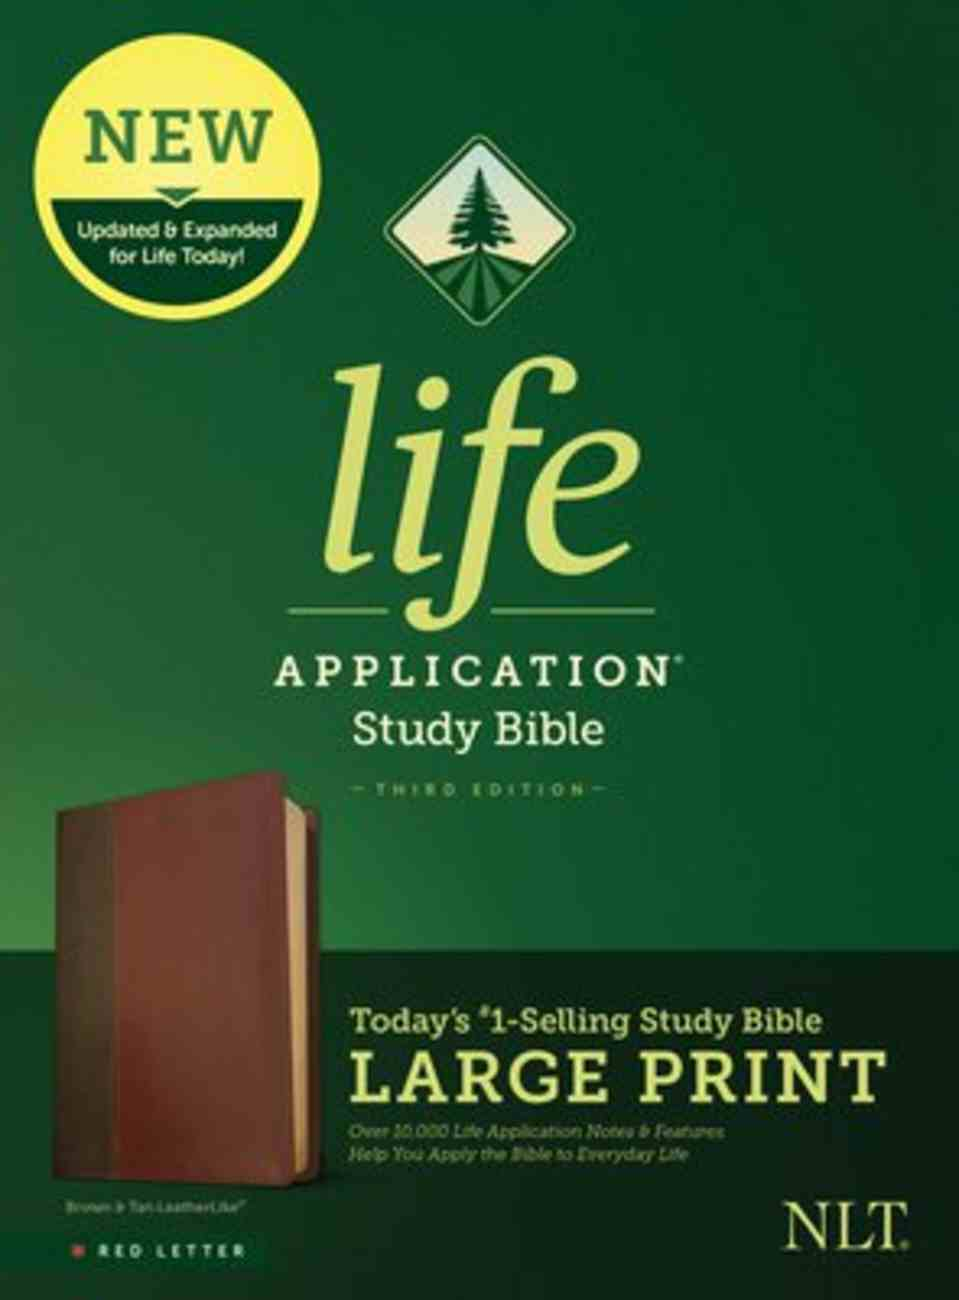 NLT Life Application Study Bible Third Edition Large Print Brown/Tan (Red Letter Edition) Imitation Leather